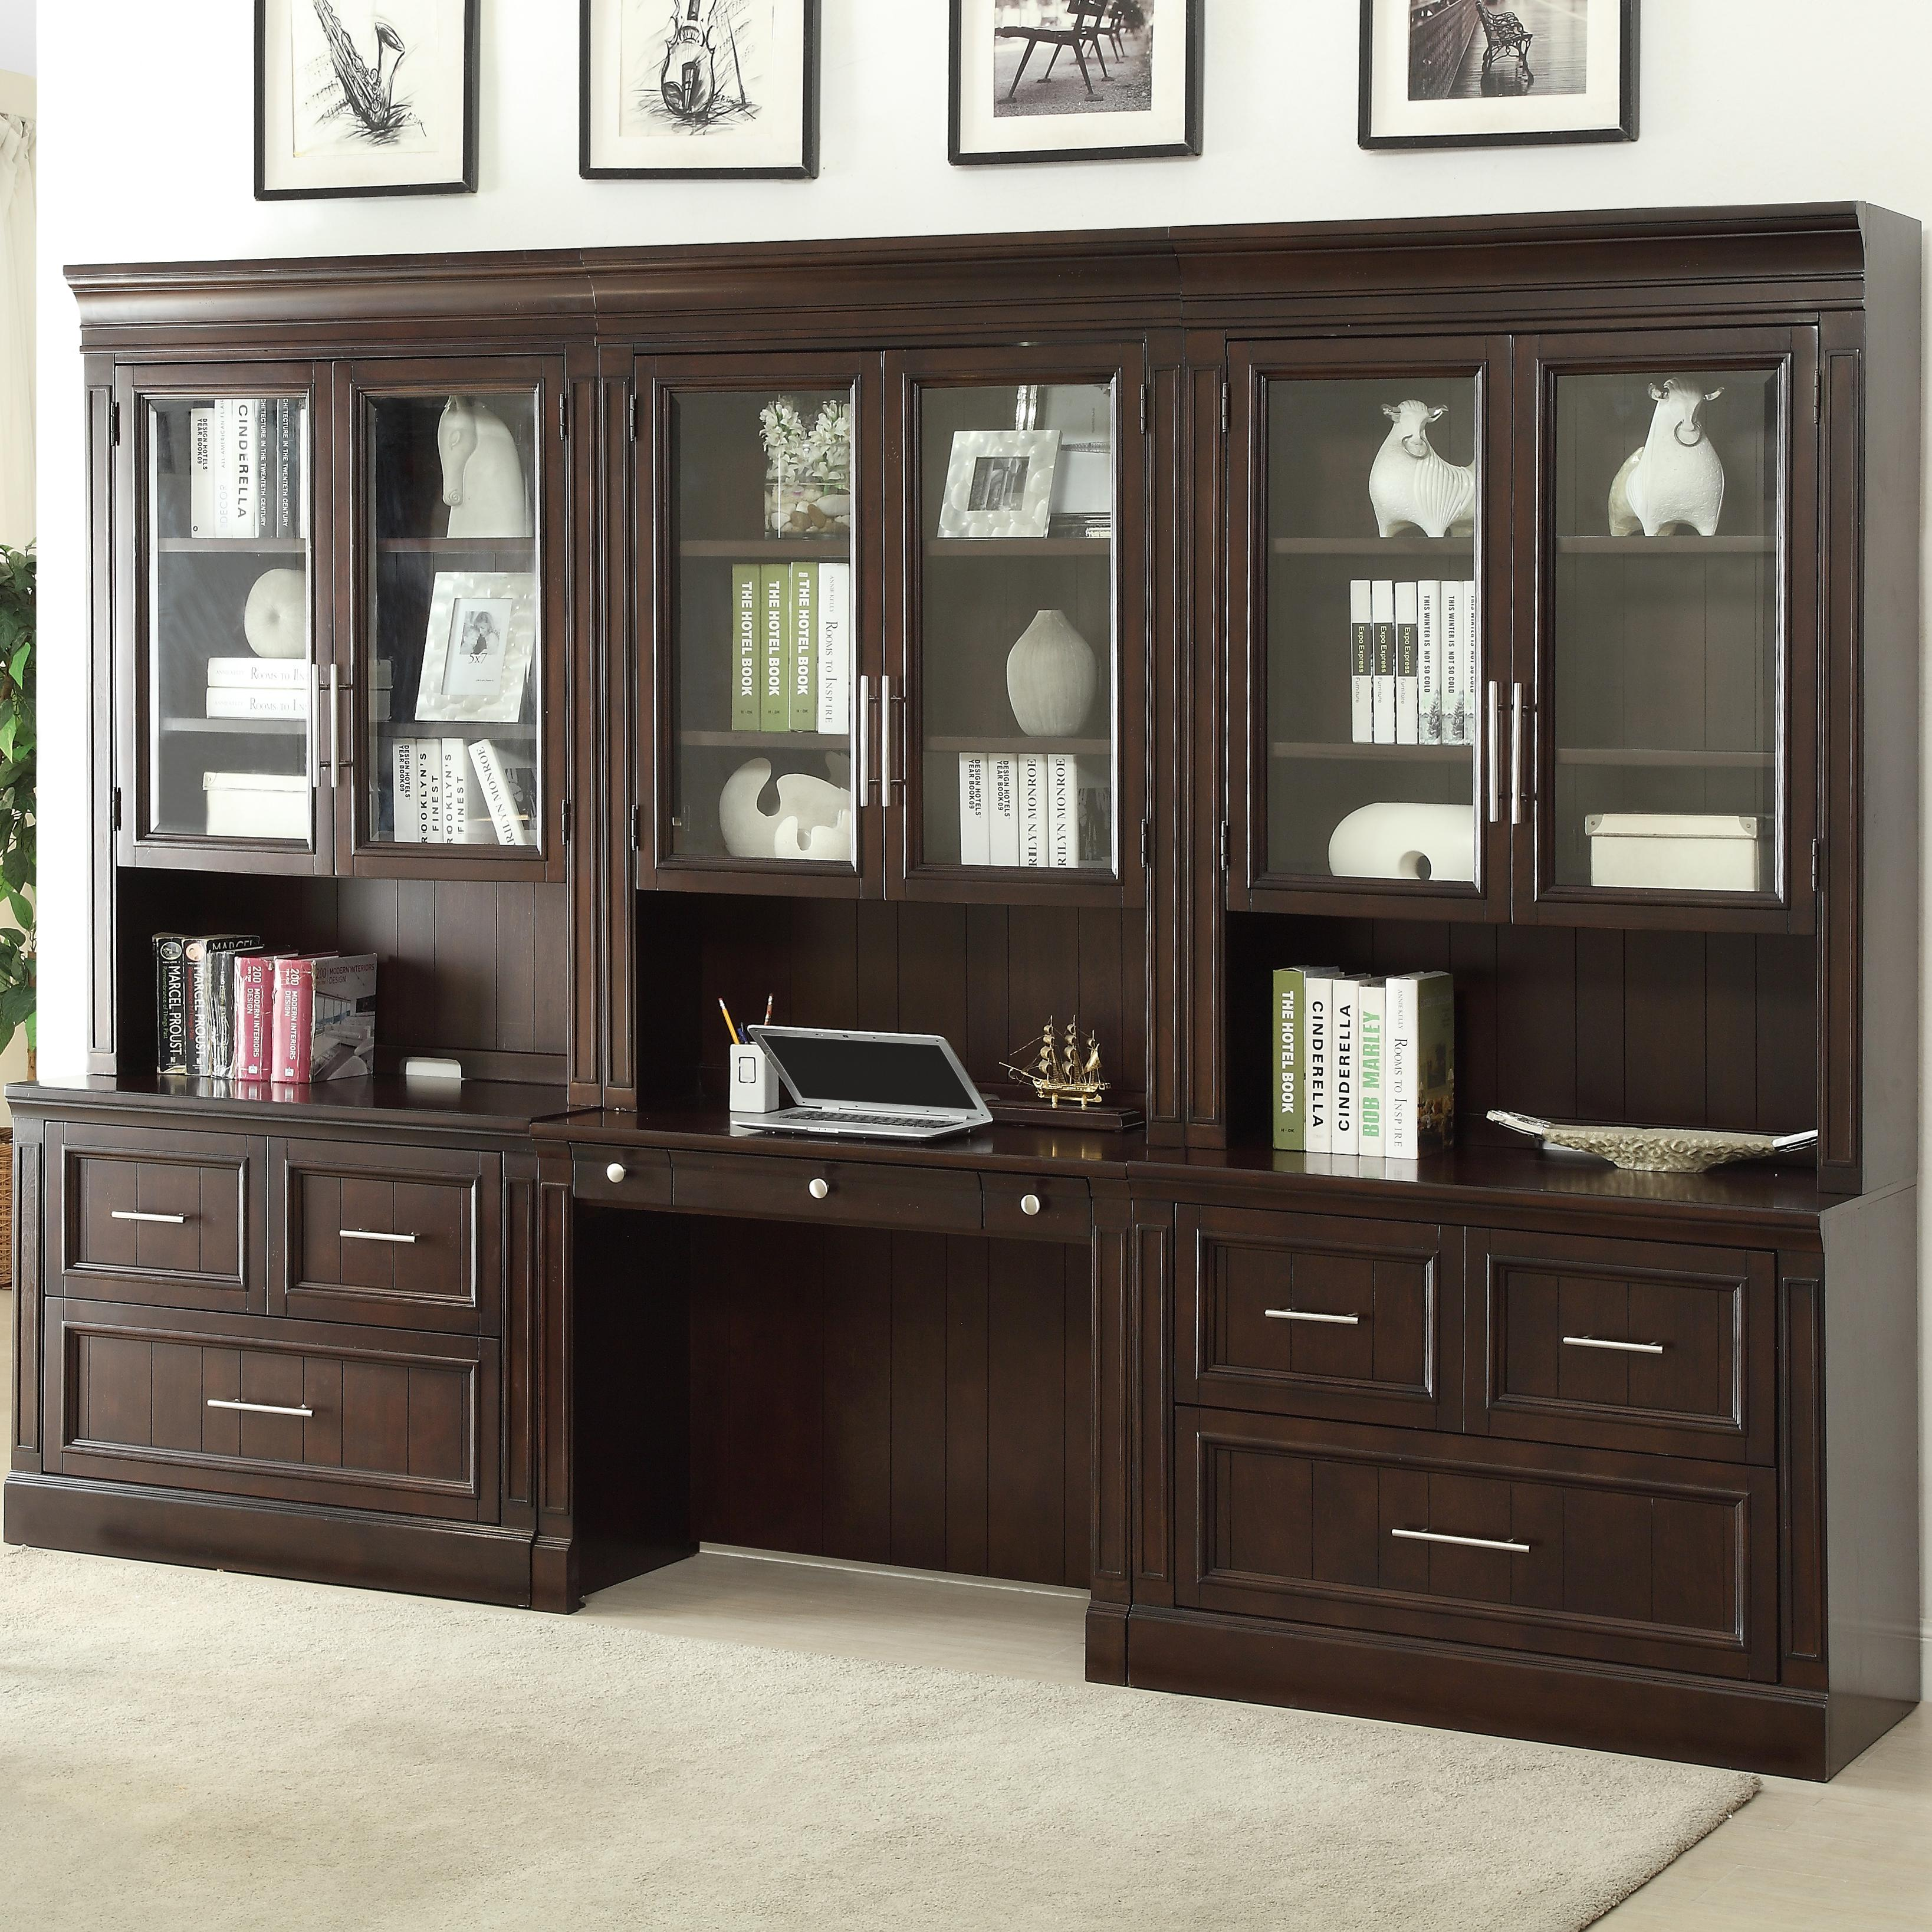 Stanford Wall Unit